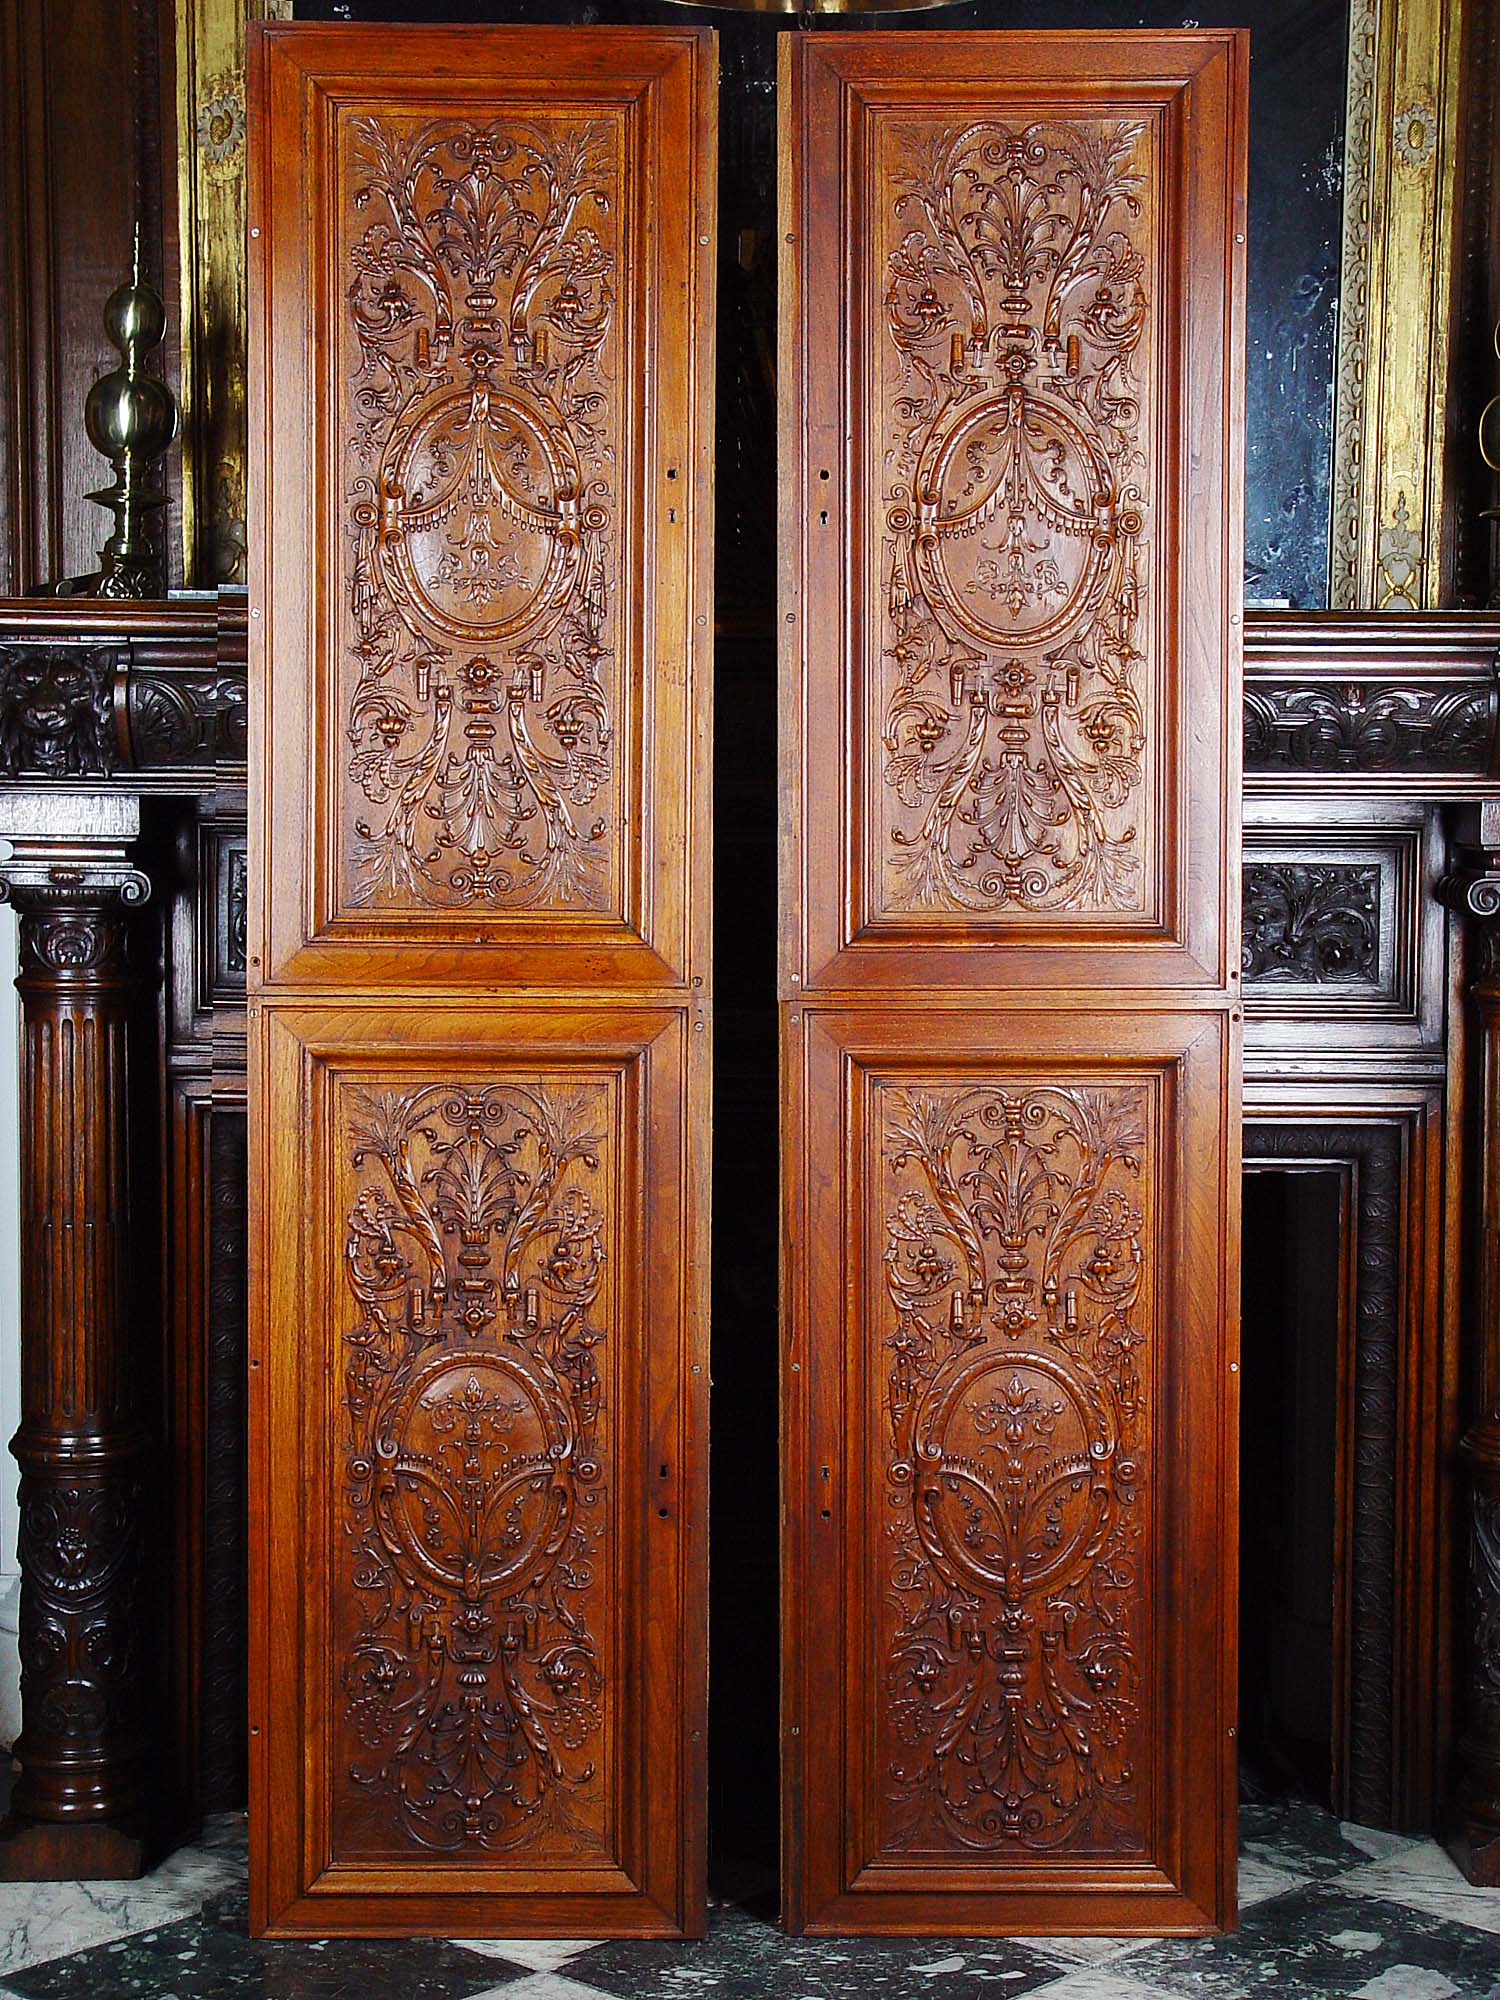 Antique carved walnut panels in the Renaissance manner